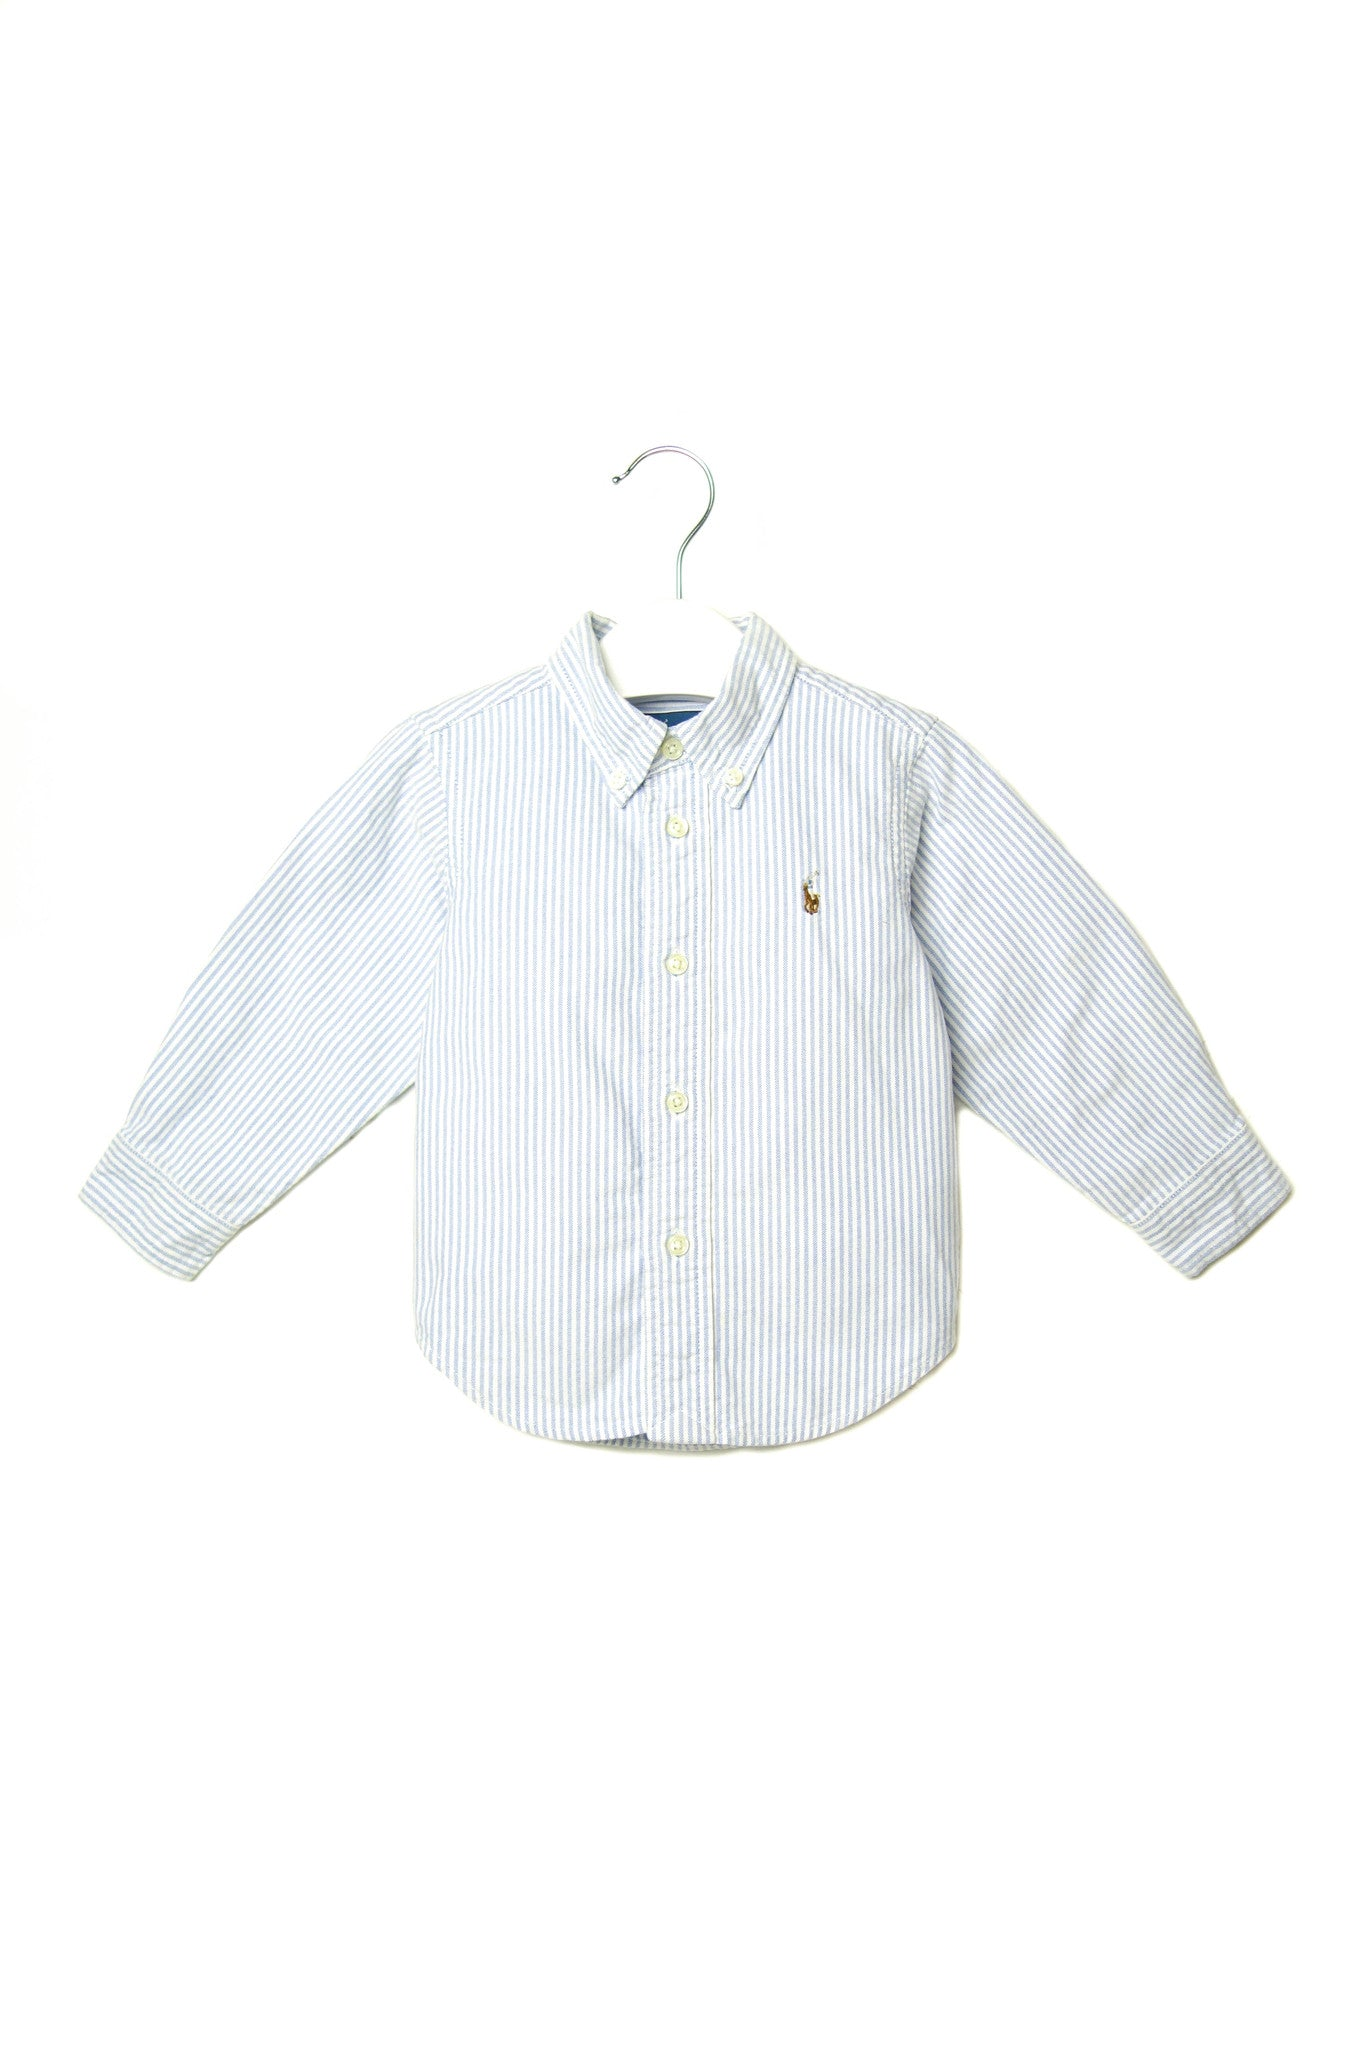 10002106 Ralph Lauren Baby~Shirt 18M at Retykle